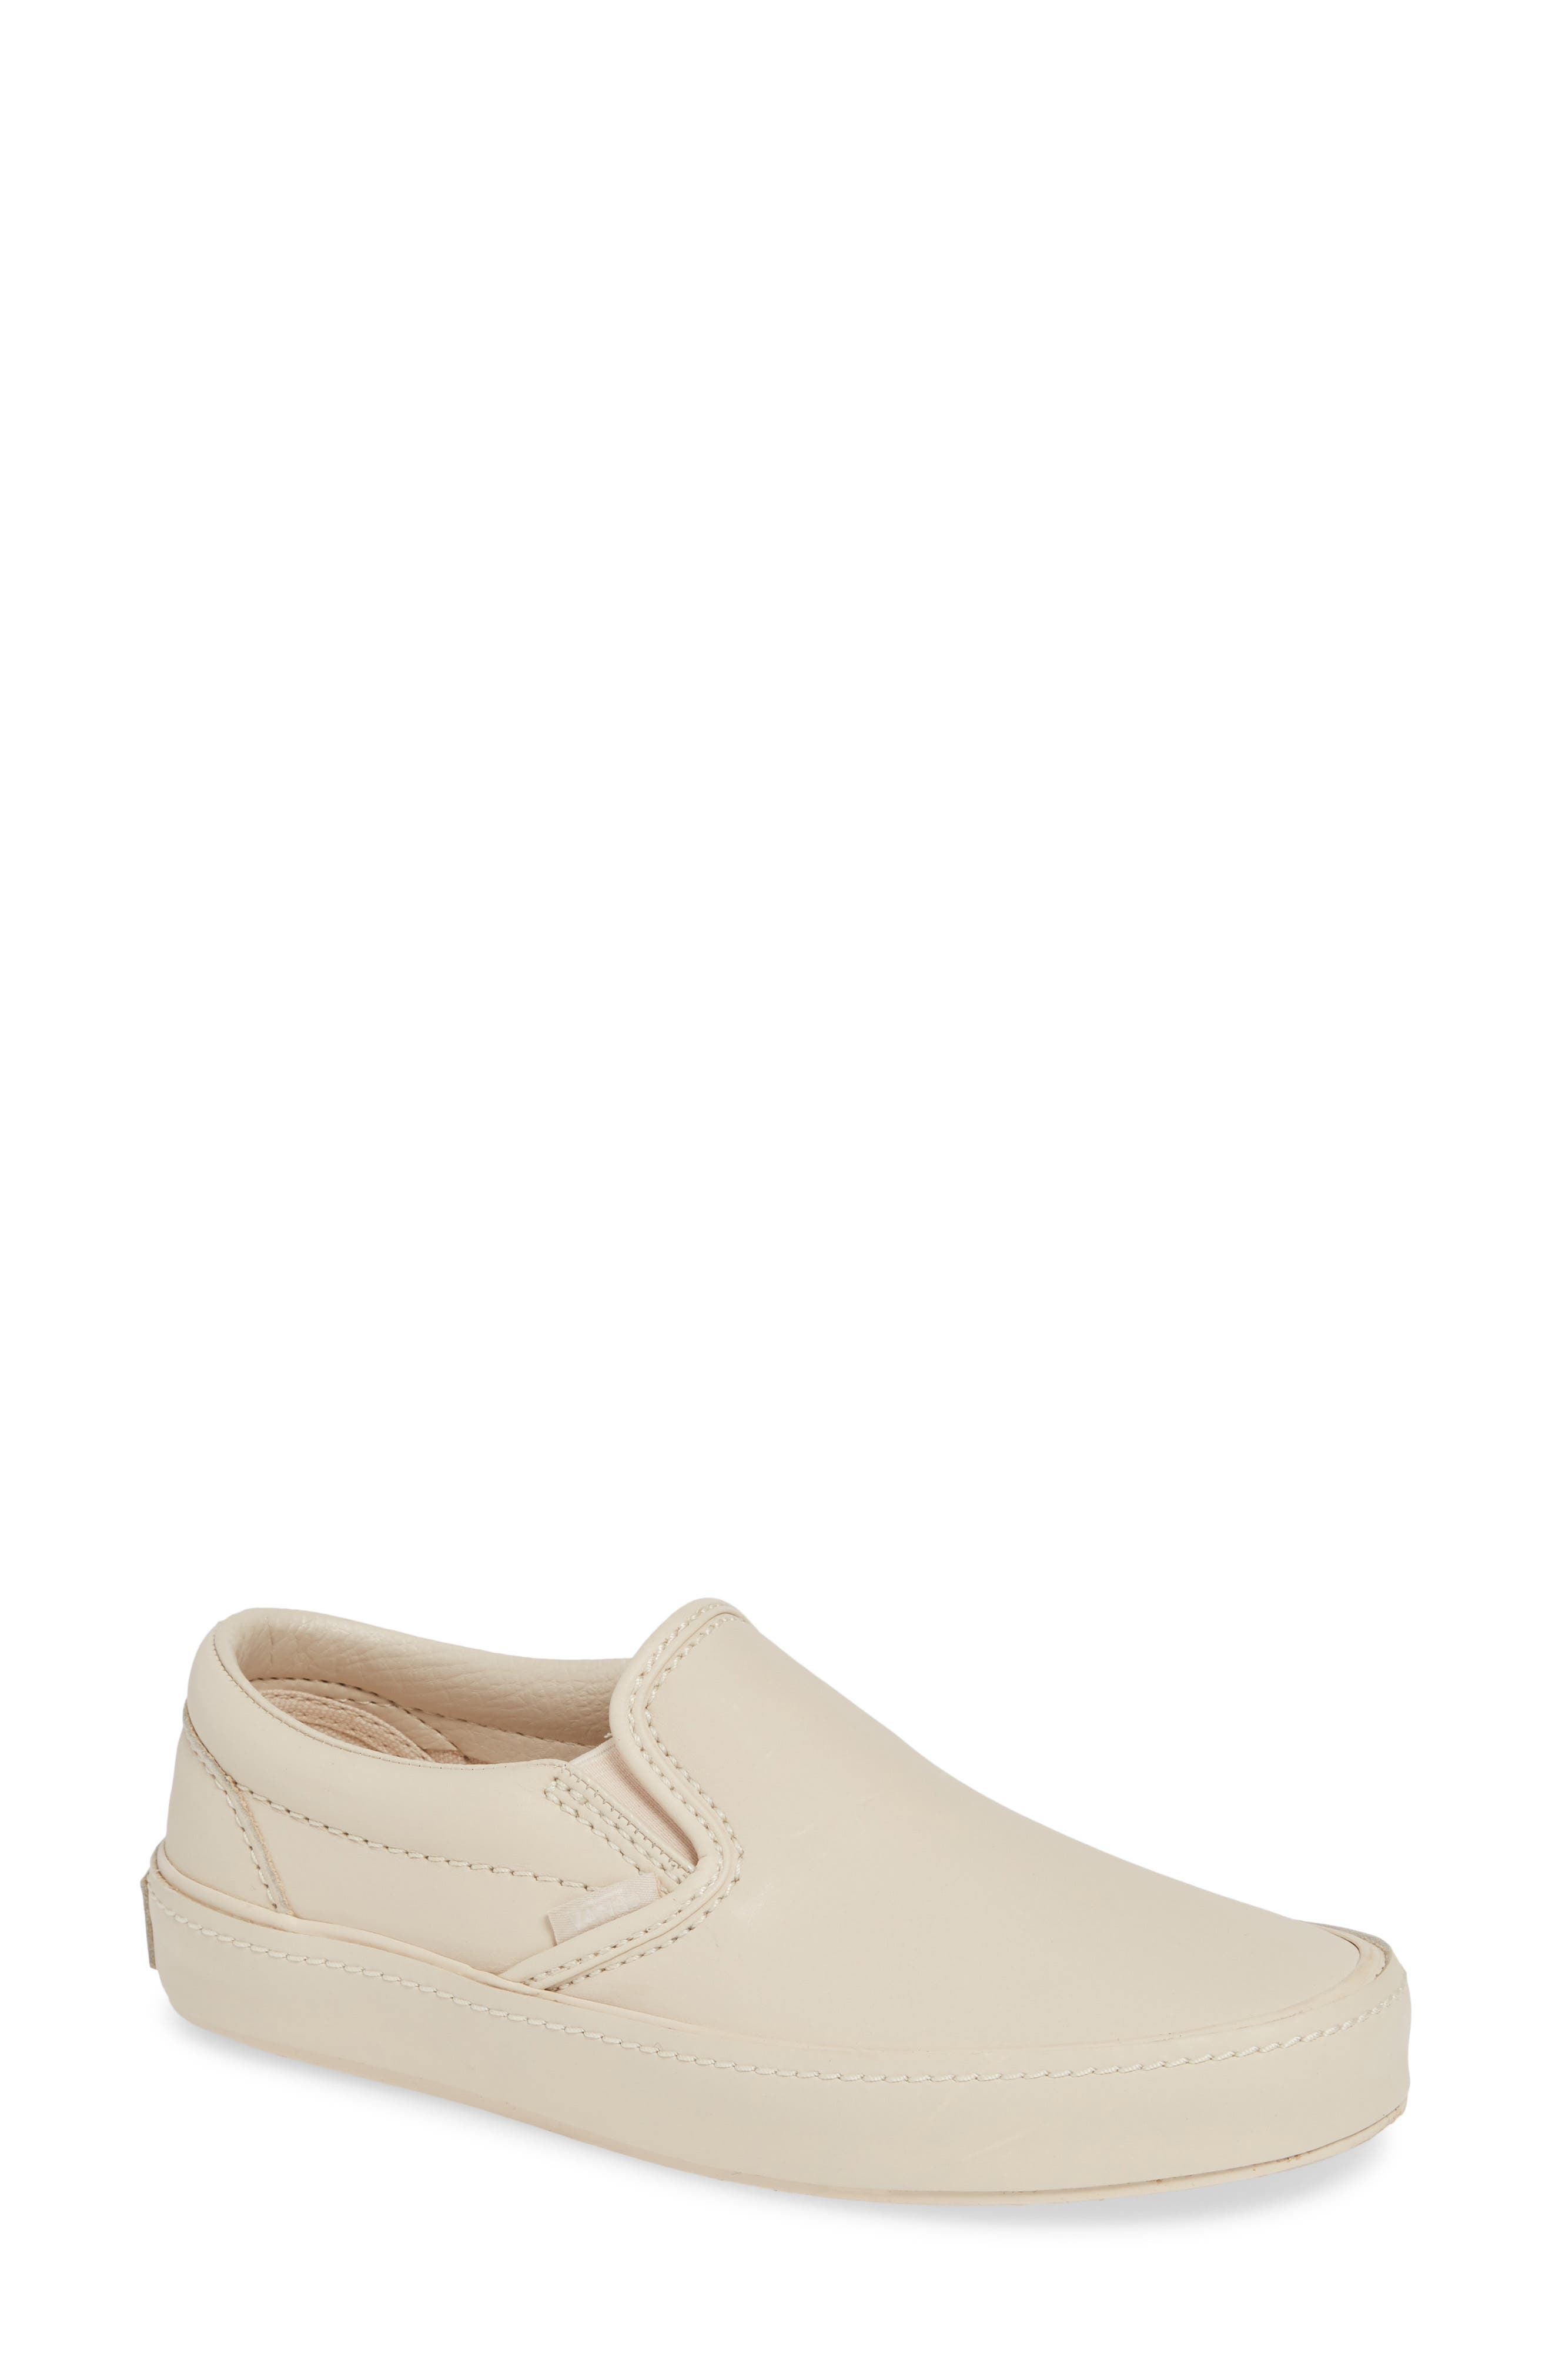 VANS Classic Leather Slip-On Sneaker, Main, color, 270